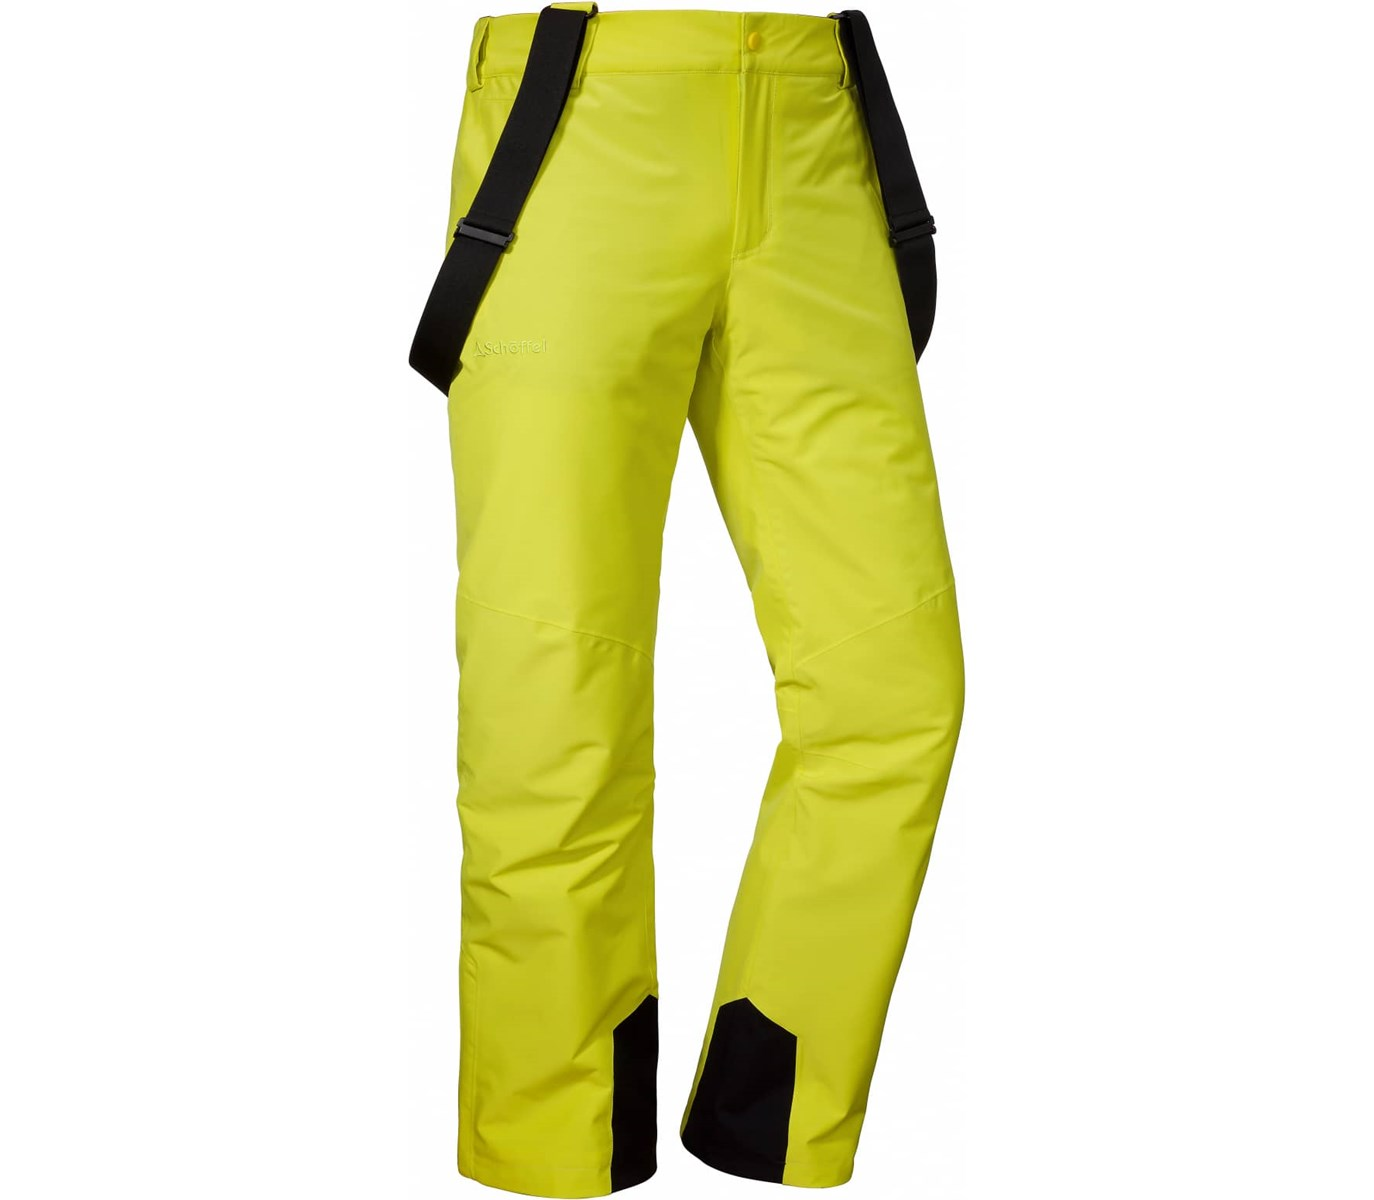 4fe66f9e2e Schoffel Bern Mens Ski Pants 2019 Sulphur. 0 (Be the first to add a review!)